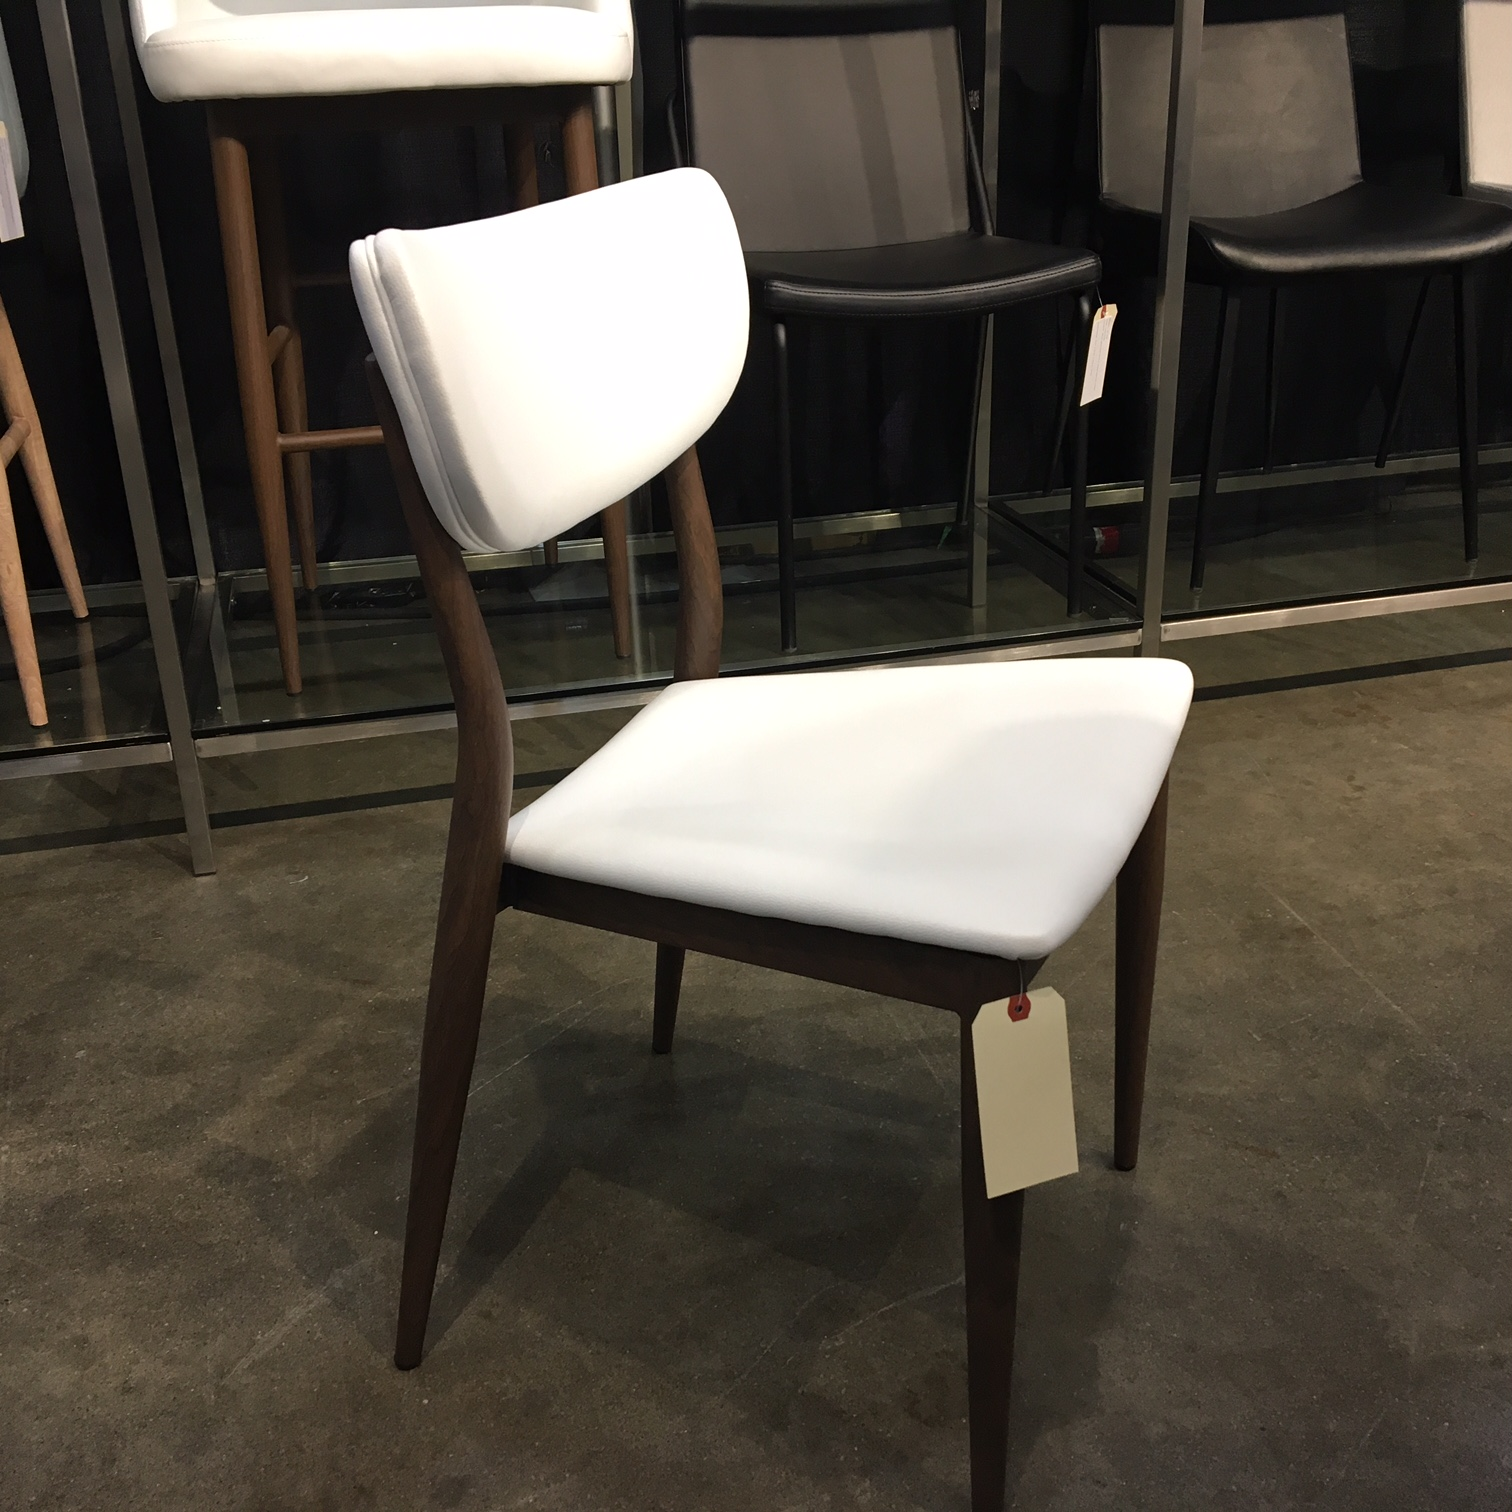 Bench Store Montreal Maverick Chair Mikaza Meubles Modernes Montreal Modern